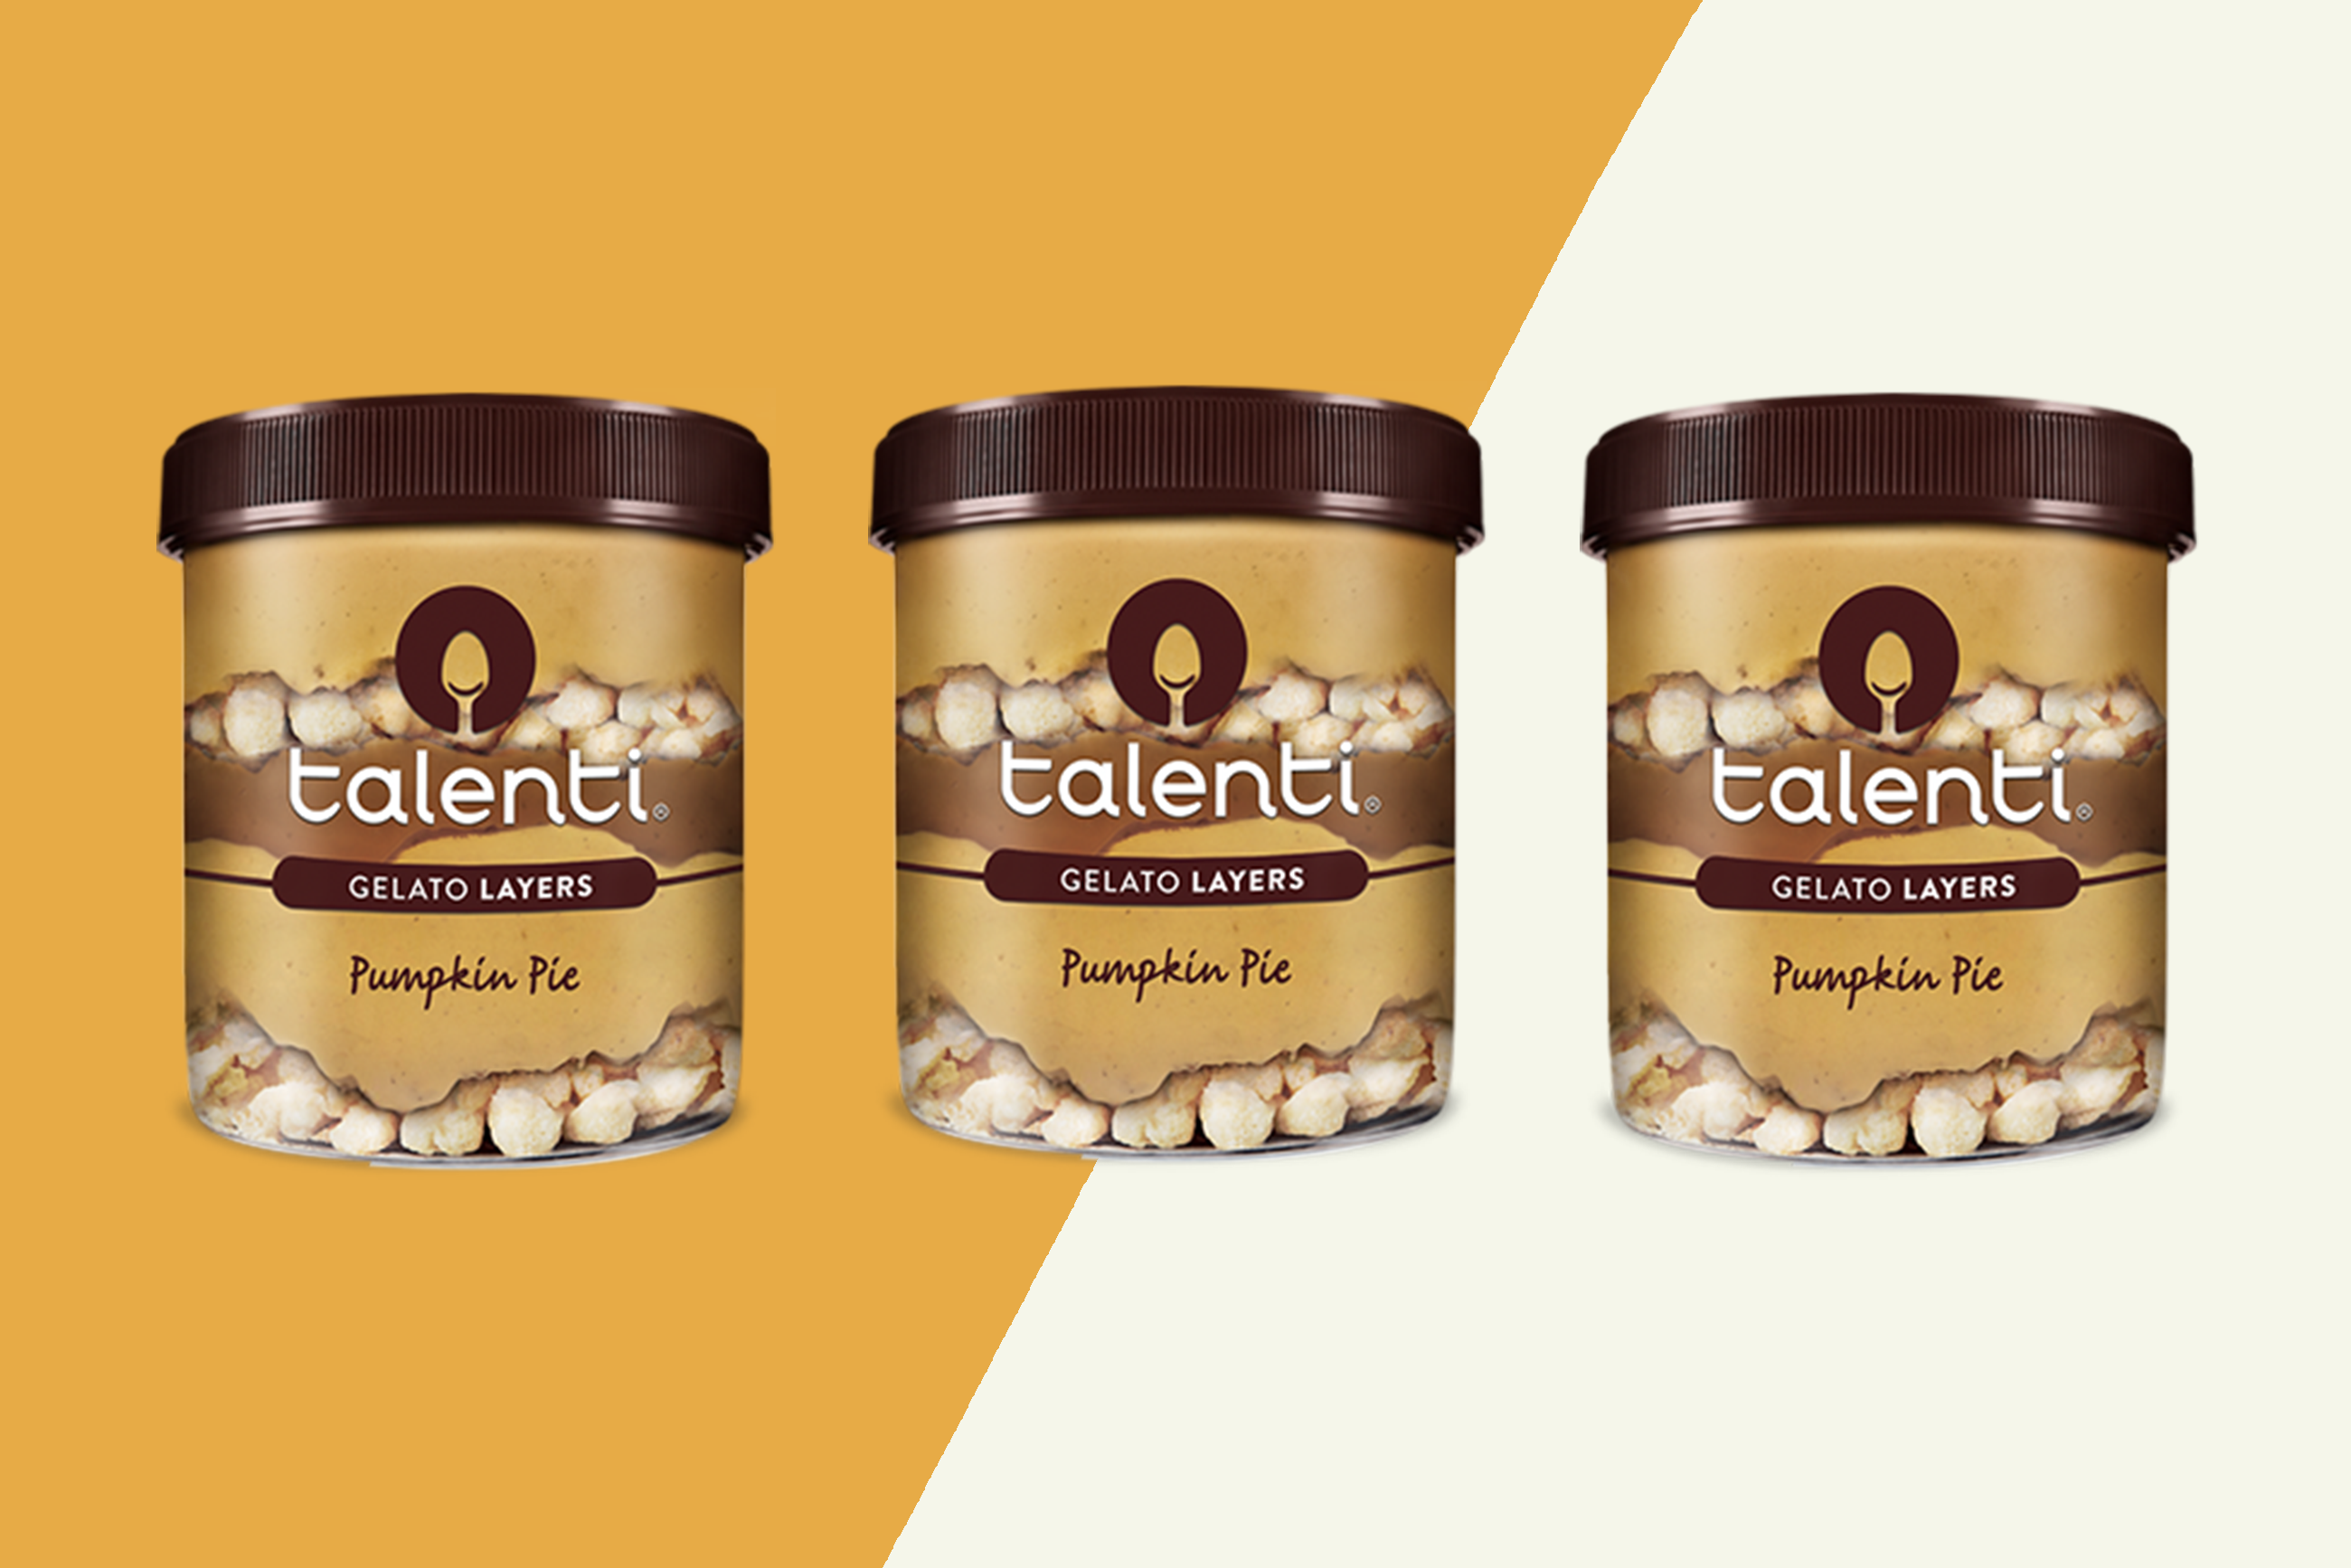 three containers of talenti pumpkin pie gelato